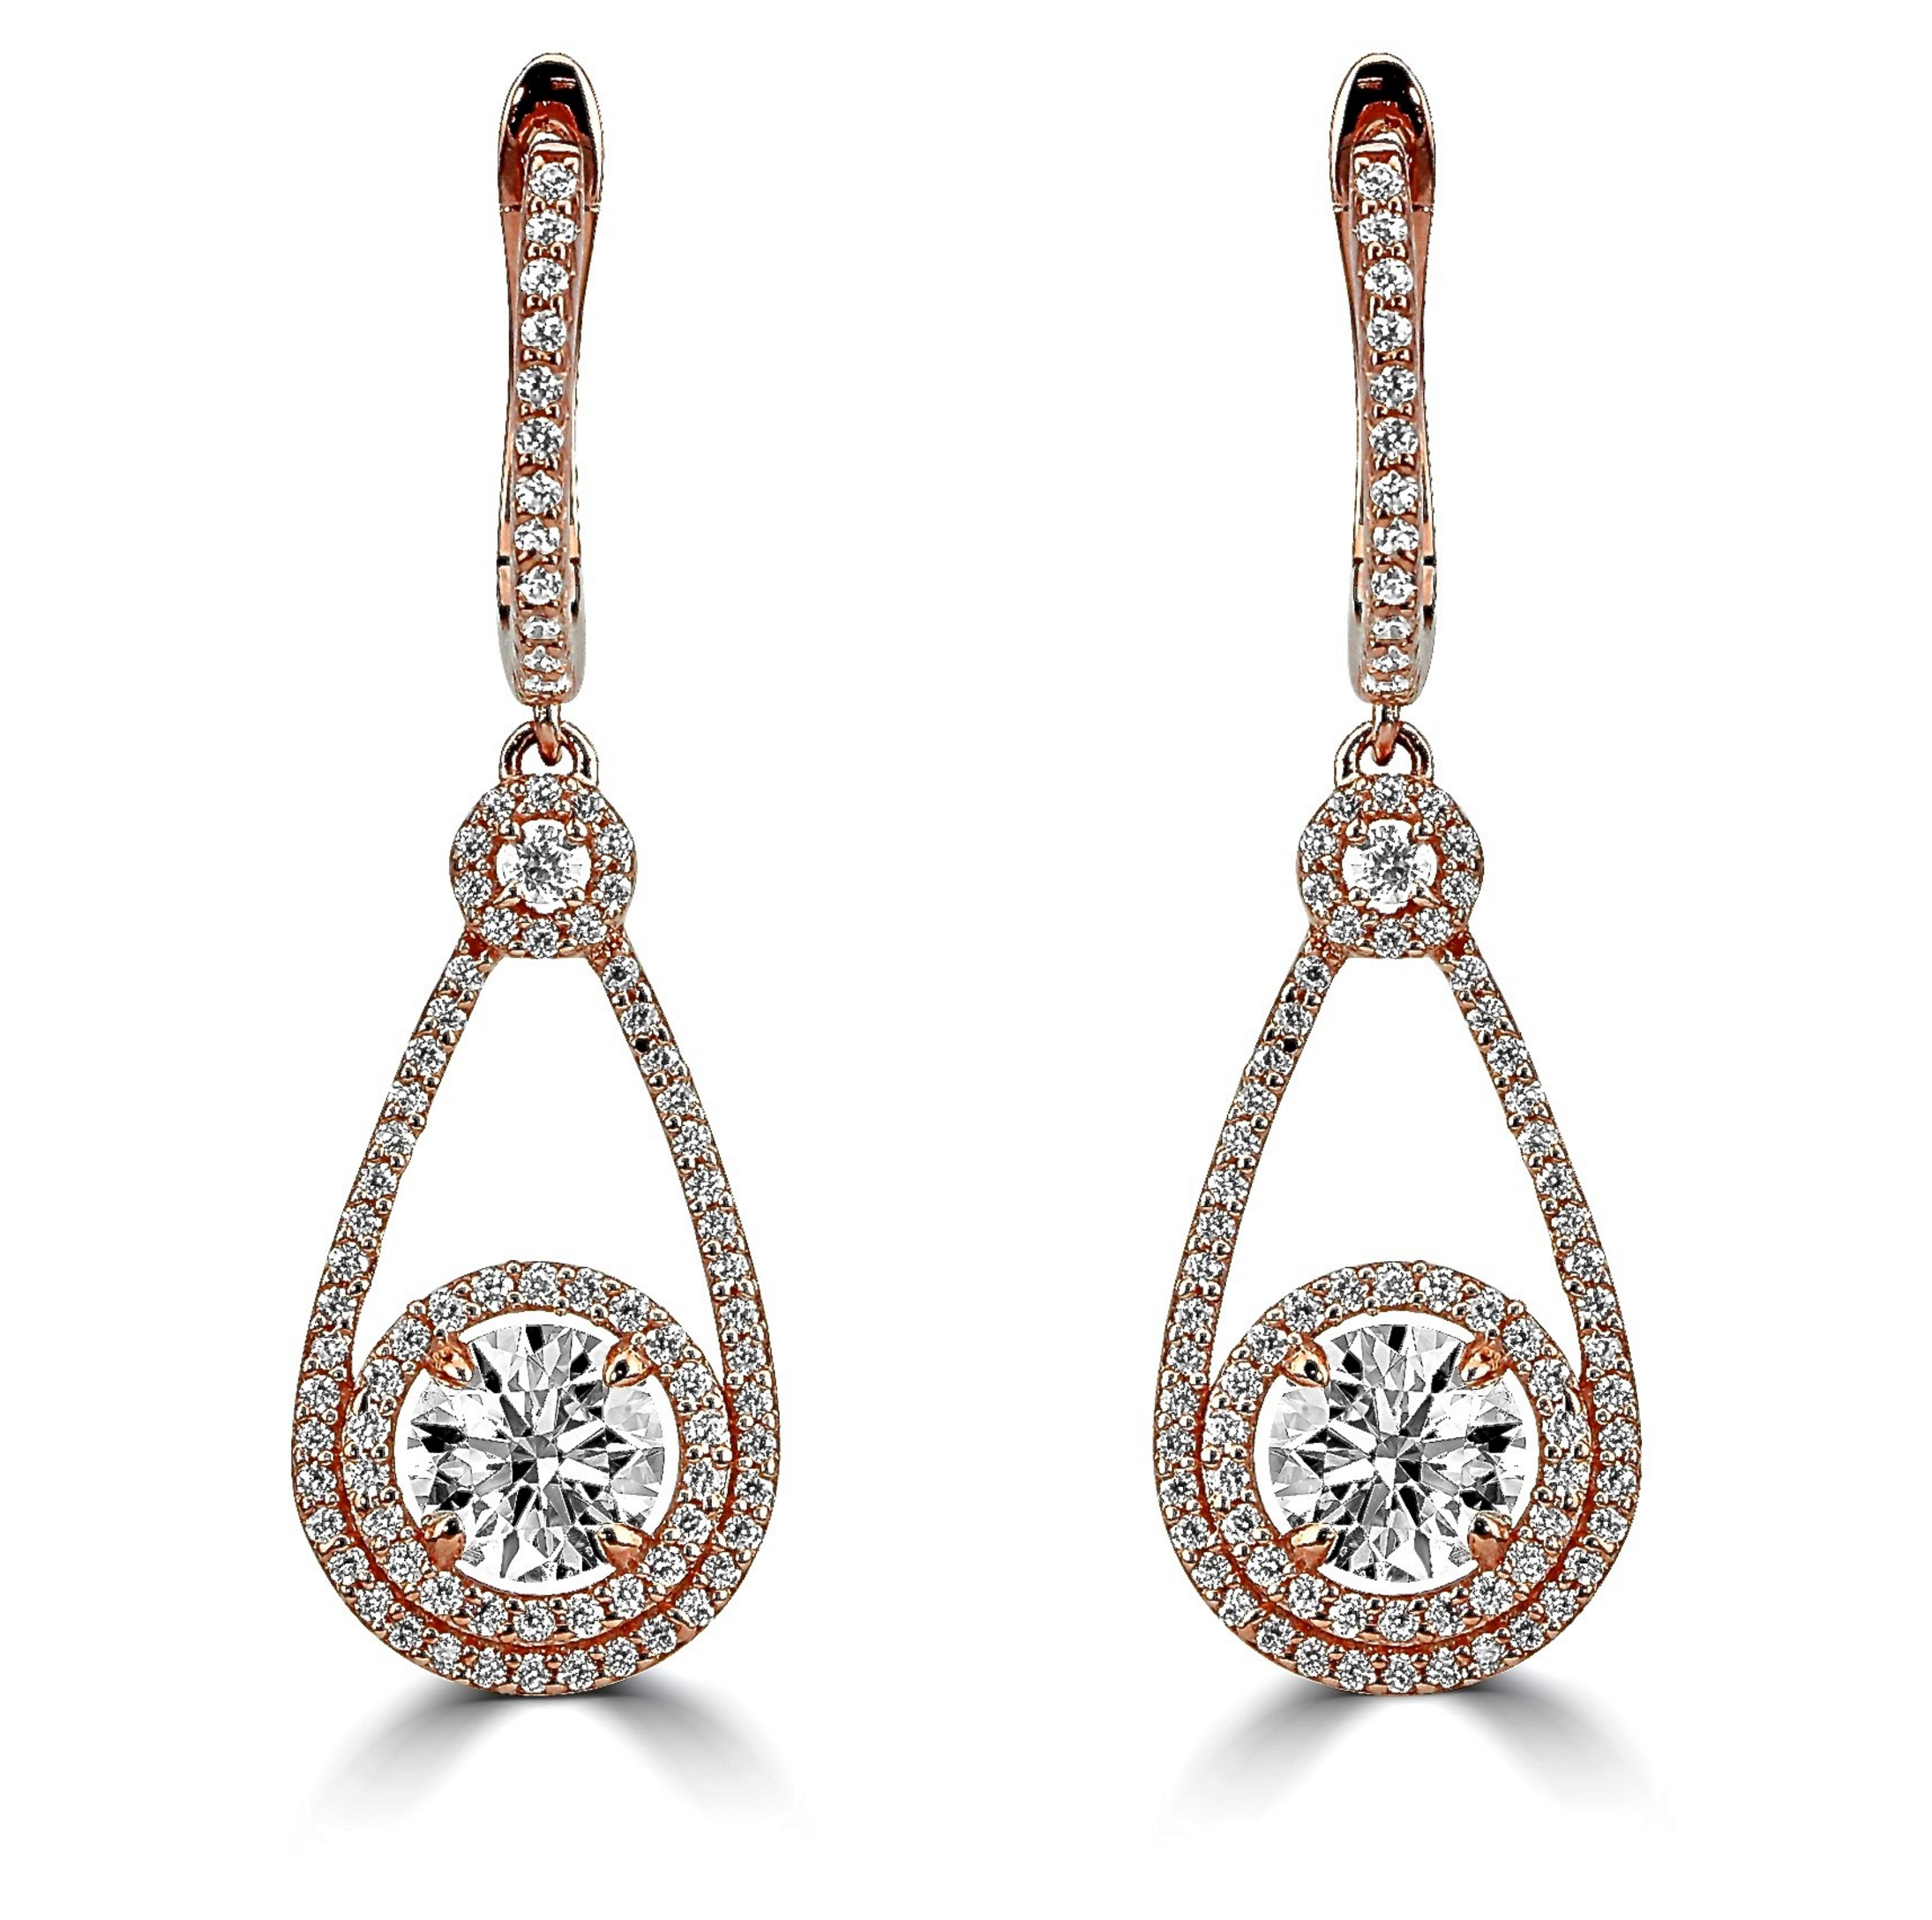 s gold diamond of nile earrings jewellry best website awesome jewellery white blue carat